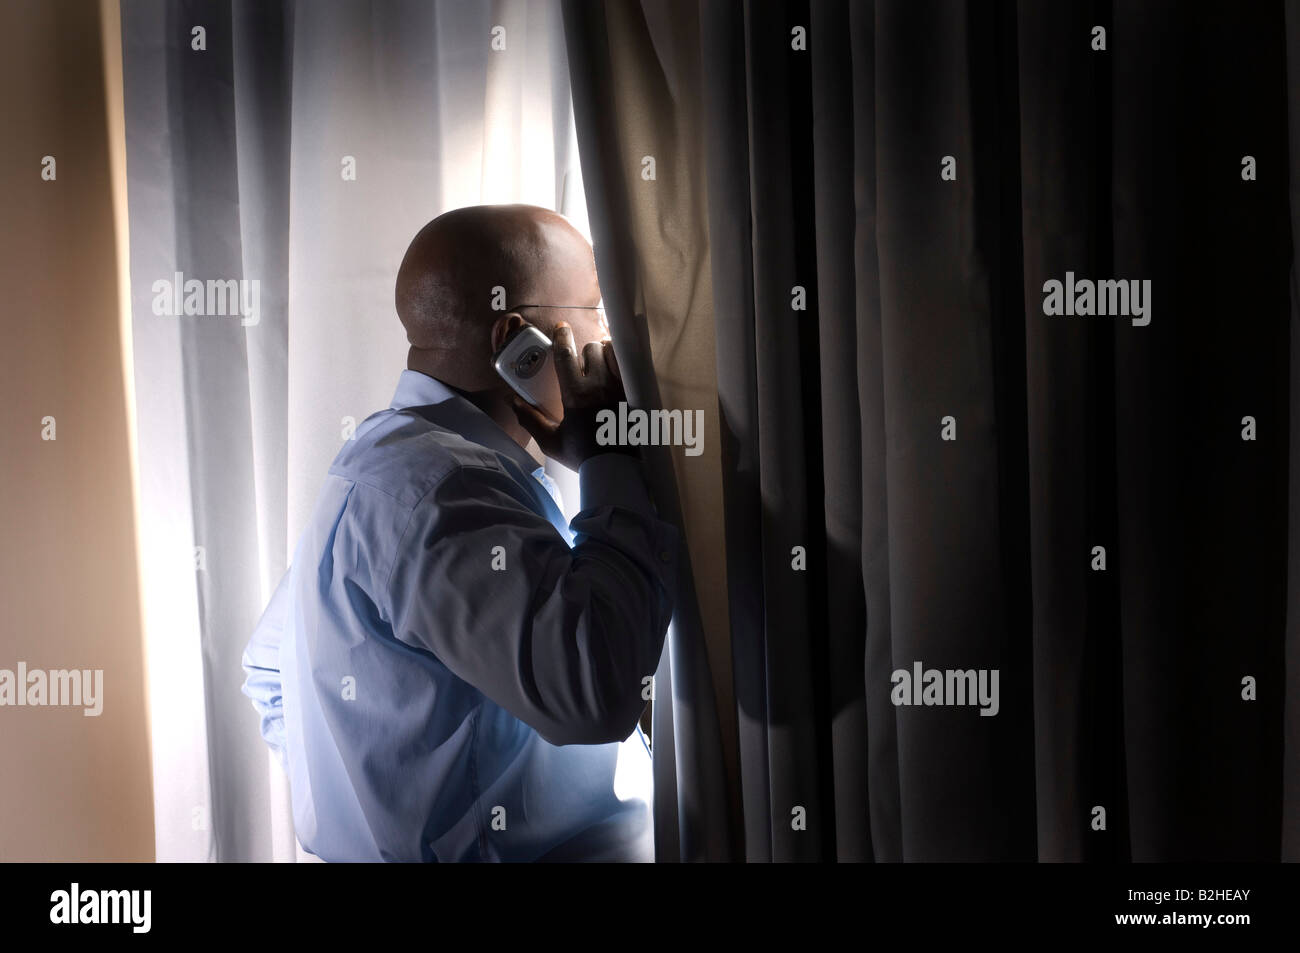 black businessman standing at window curtain talking on mobile phone - Stock Image